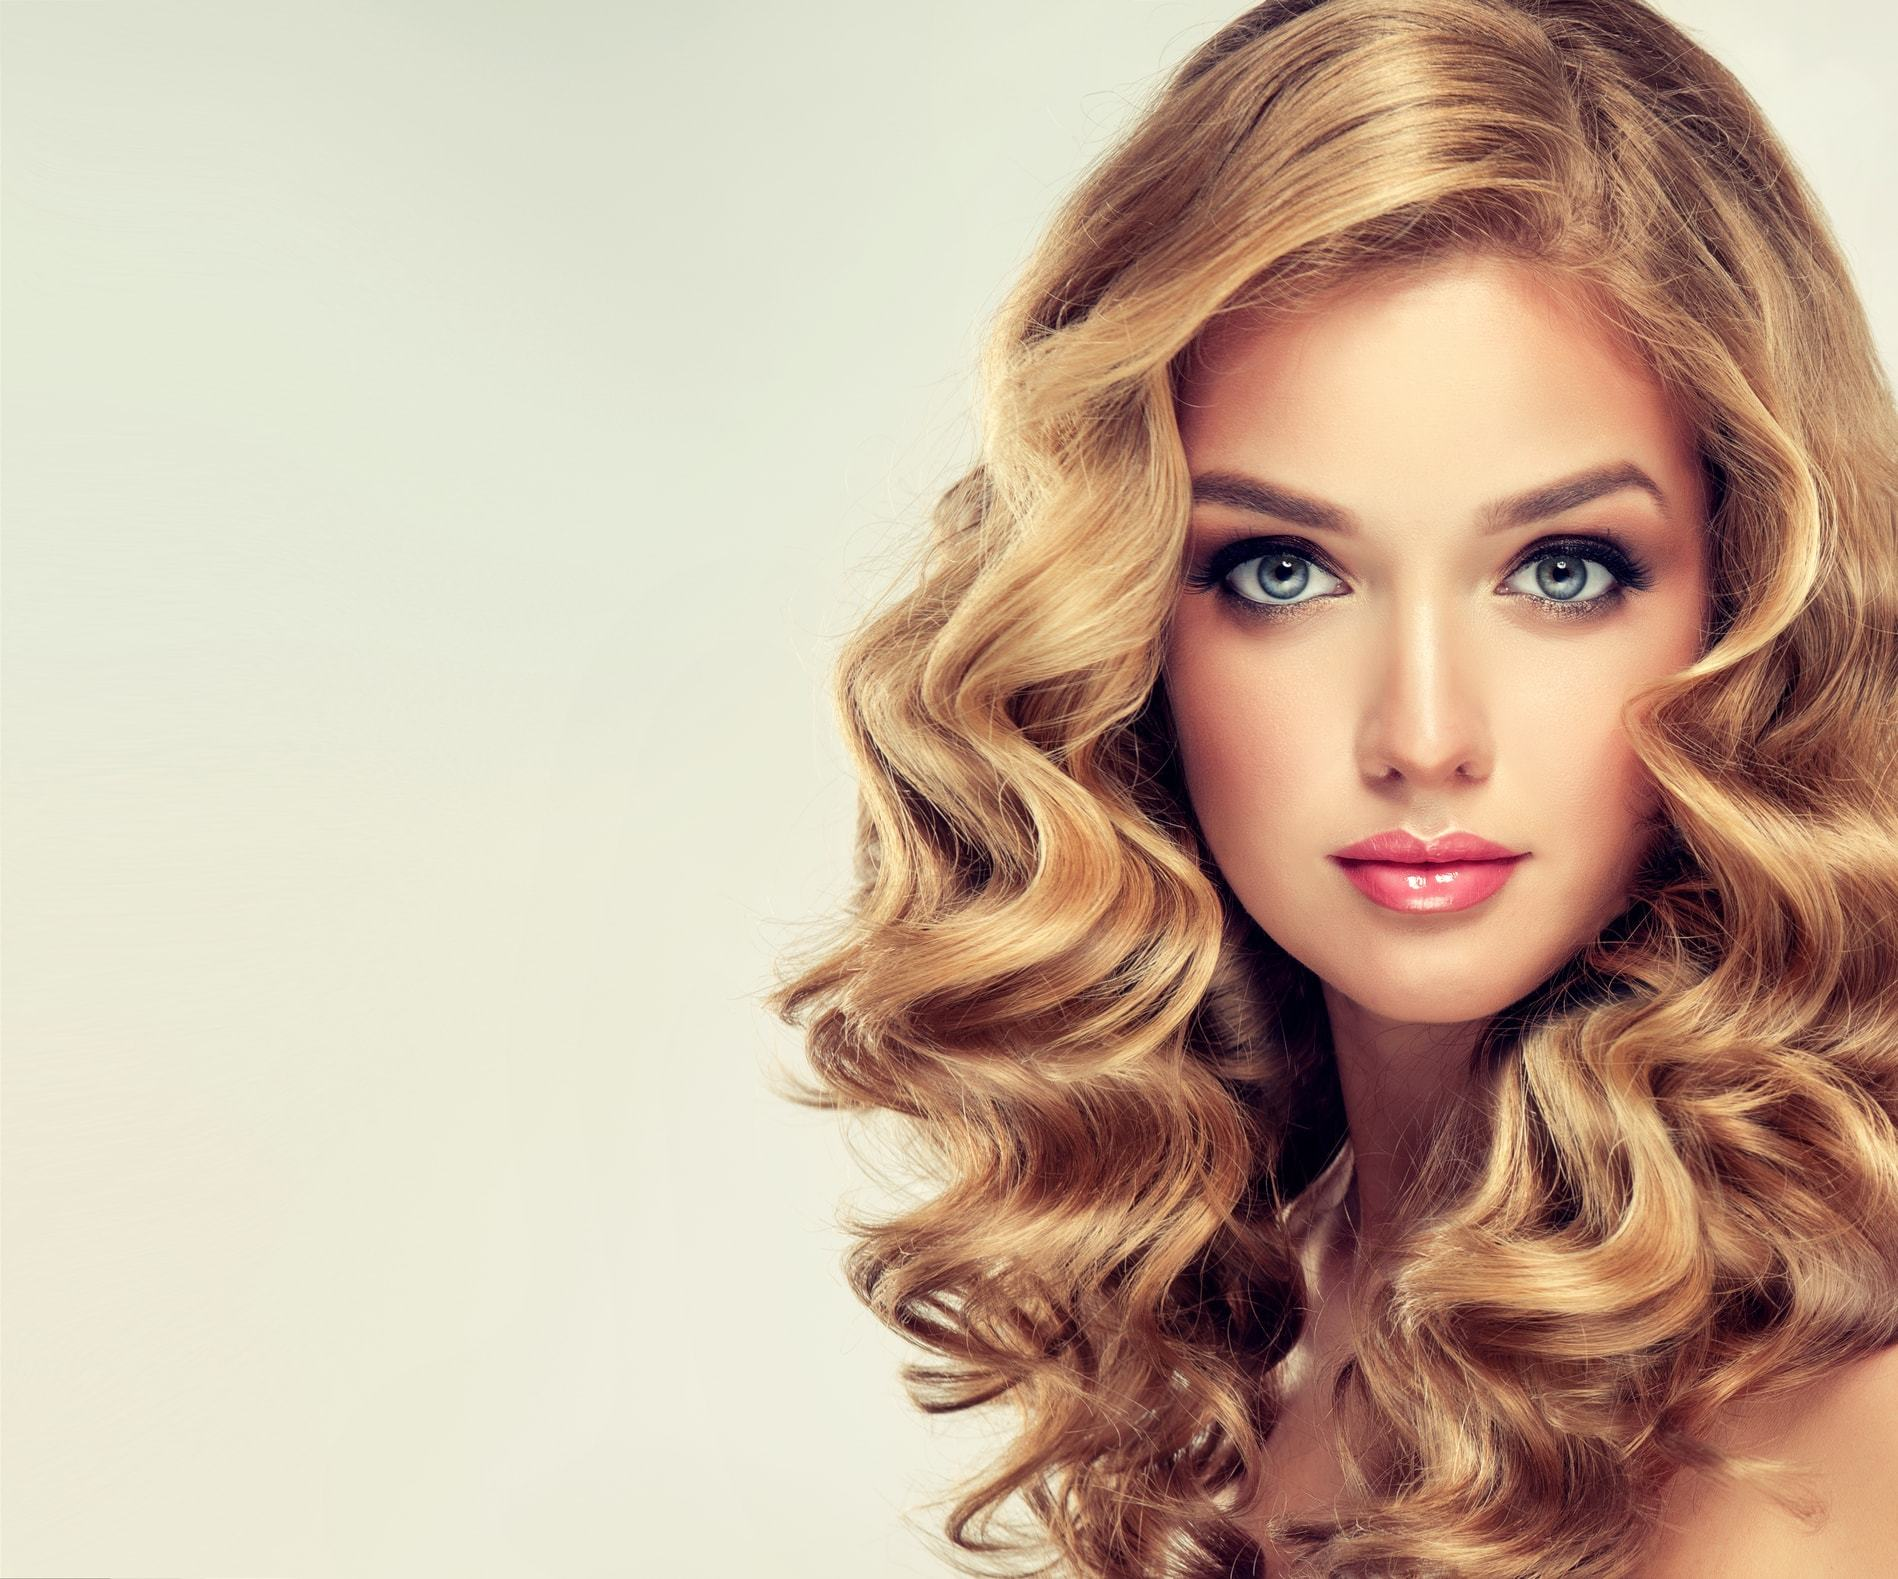 Discussion on this topic: Spiral Perm vs Regular Perm, spiral-perm-vs-regular-perm/